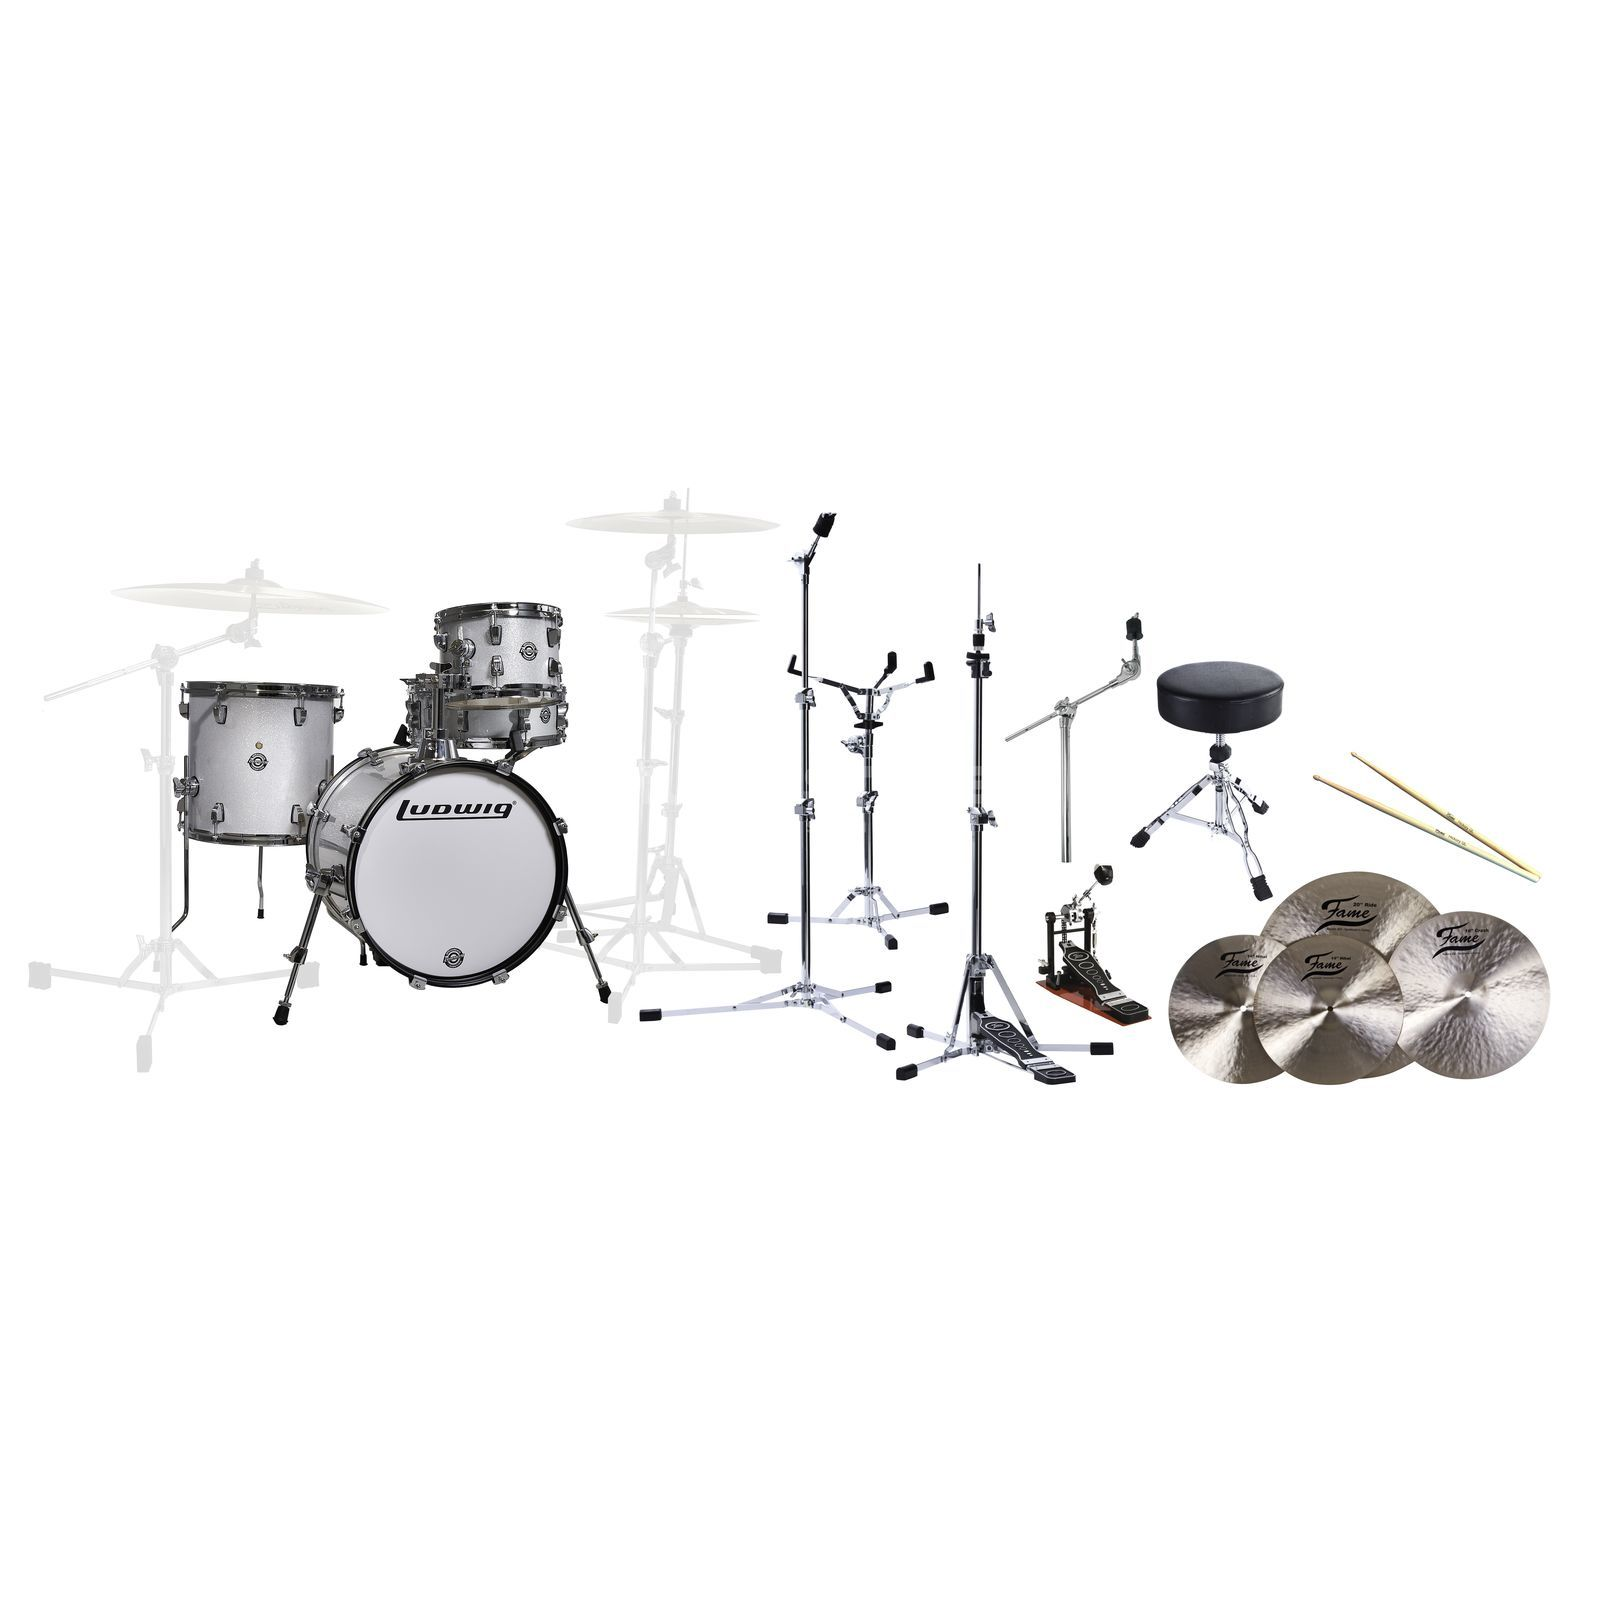 LUDWIG Breakbeats + HW2 - Set Product Image